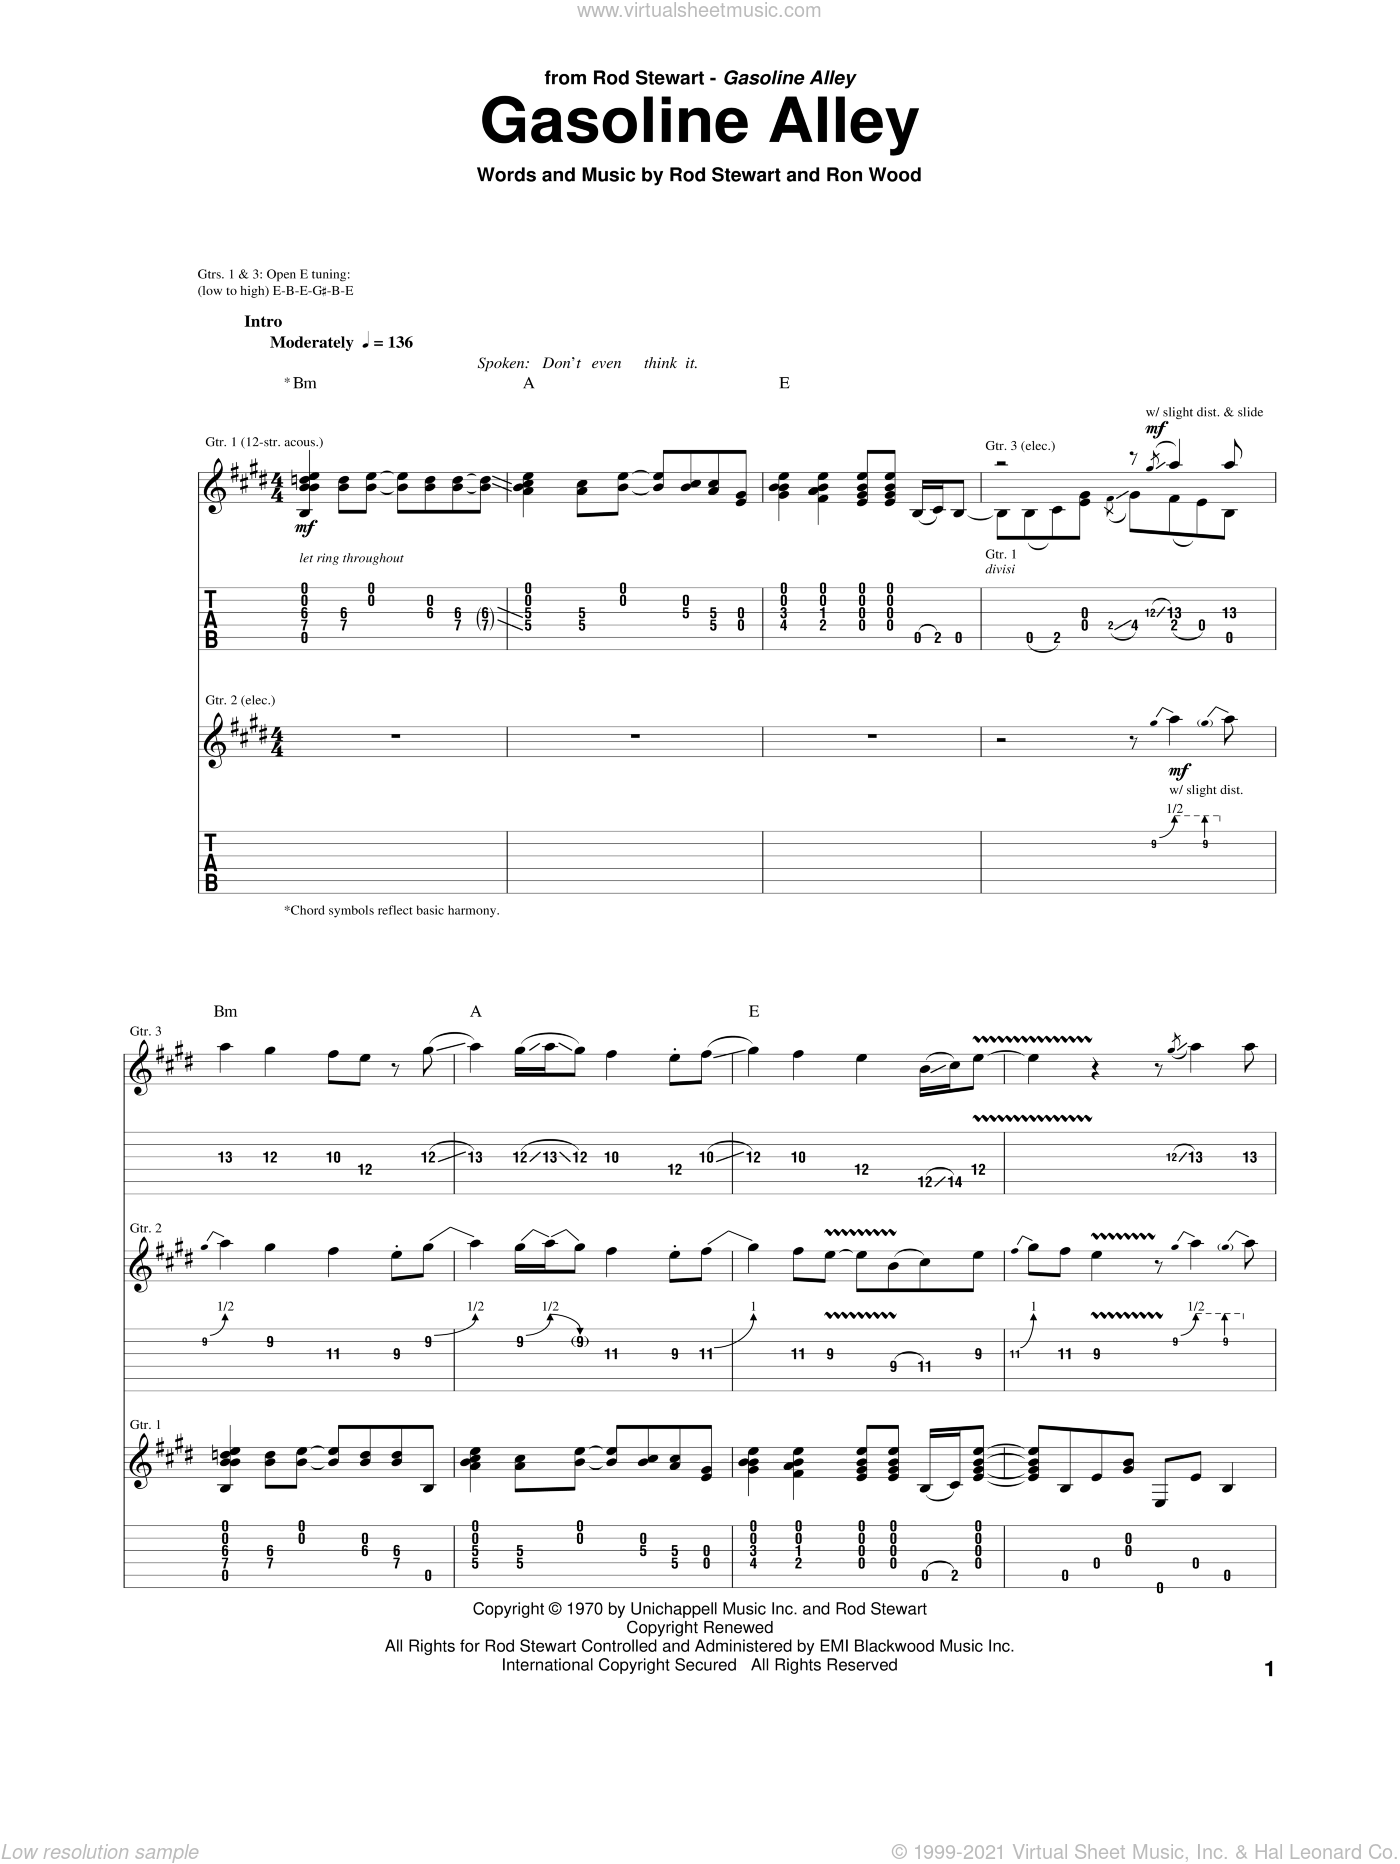 Gasoline Alley sheet music for guitar (tablature) by Rod Stewart and Ron Wood, intermediate. Score Image Preview.